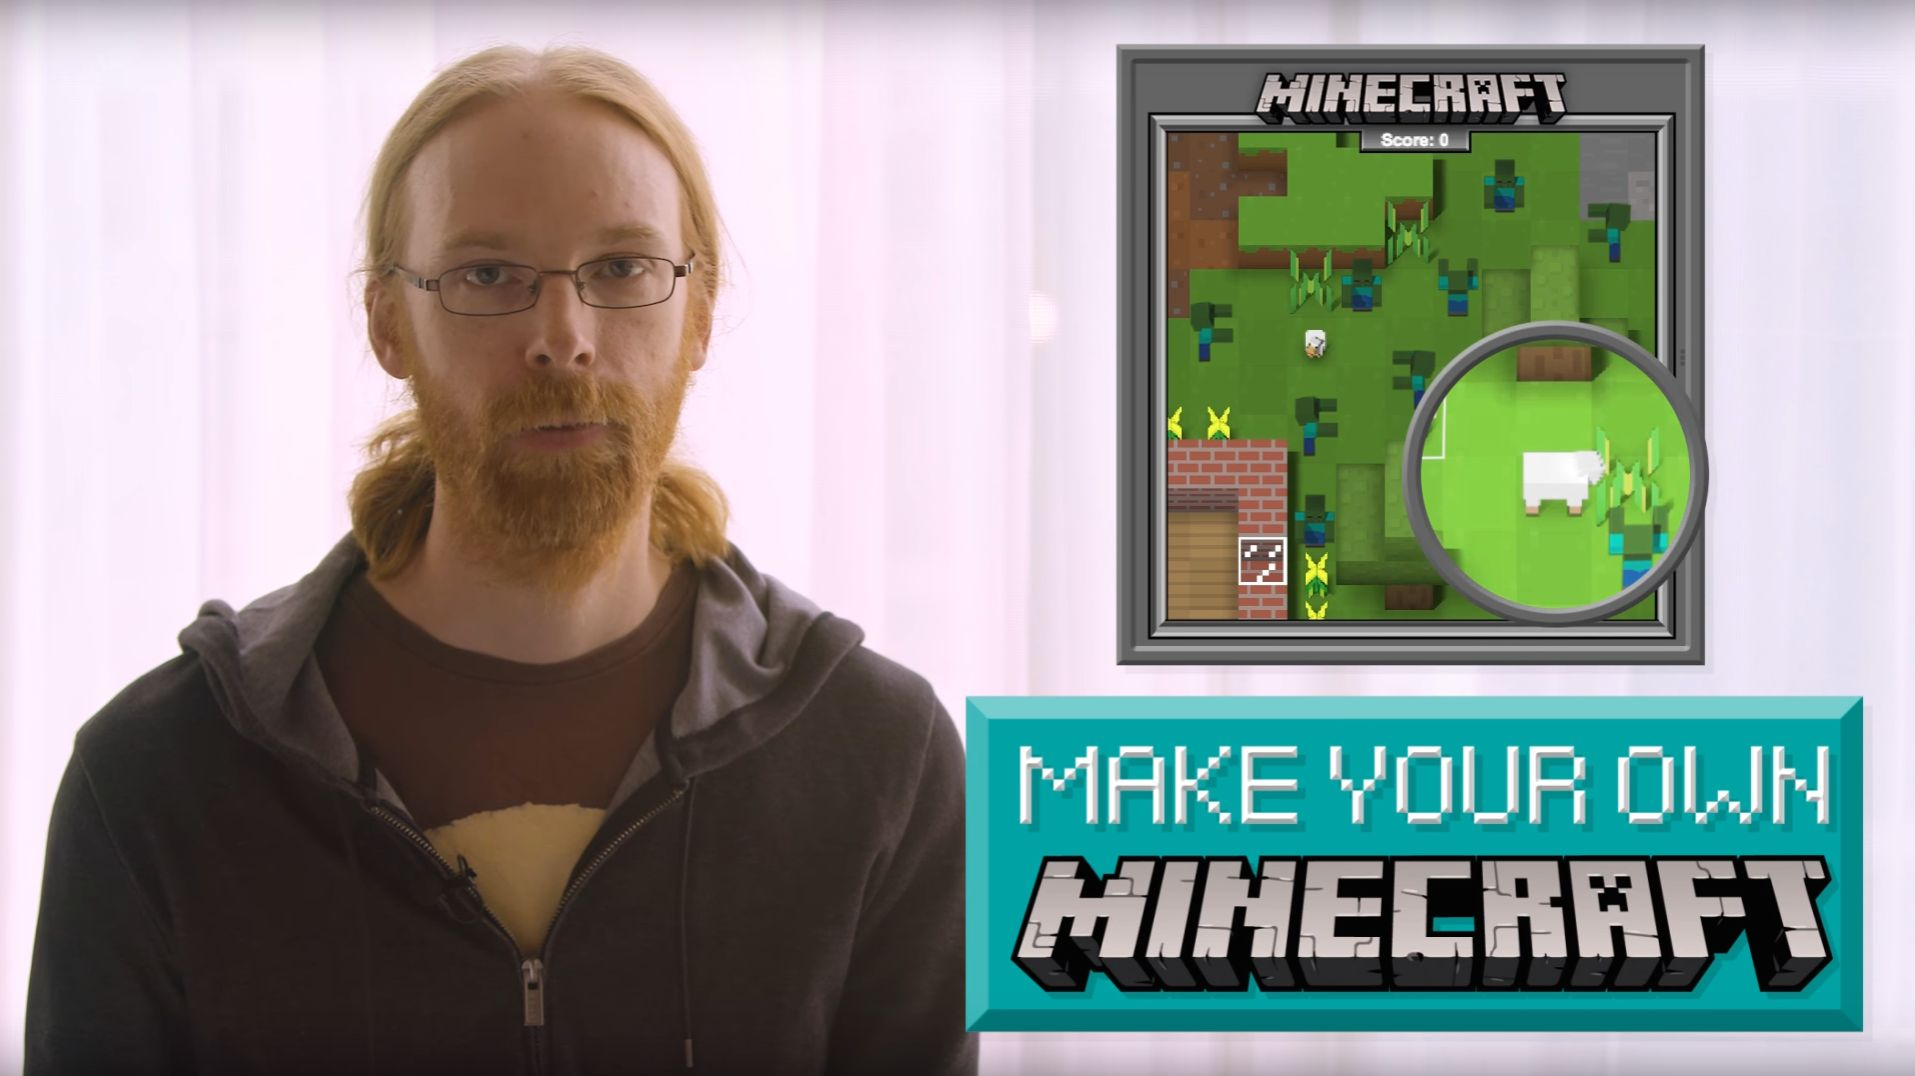 Mojang Minecraft Windows 10 Edition Original Serial Code Try Our Hour Of 2016